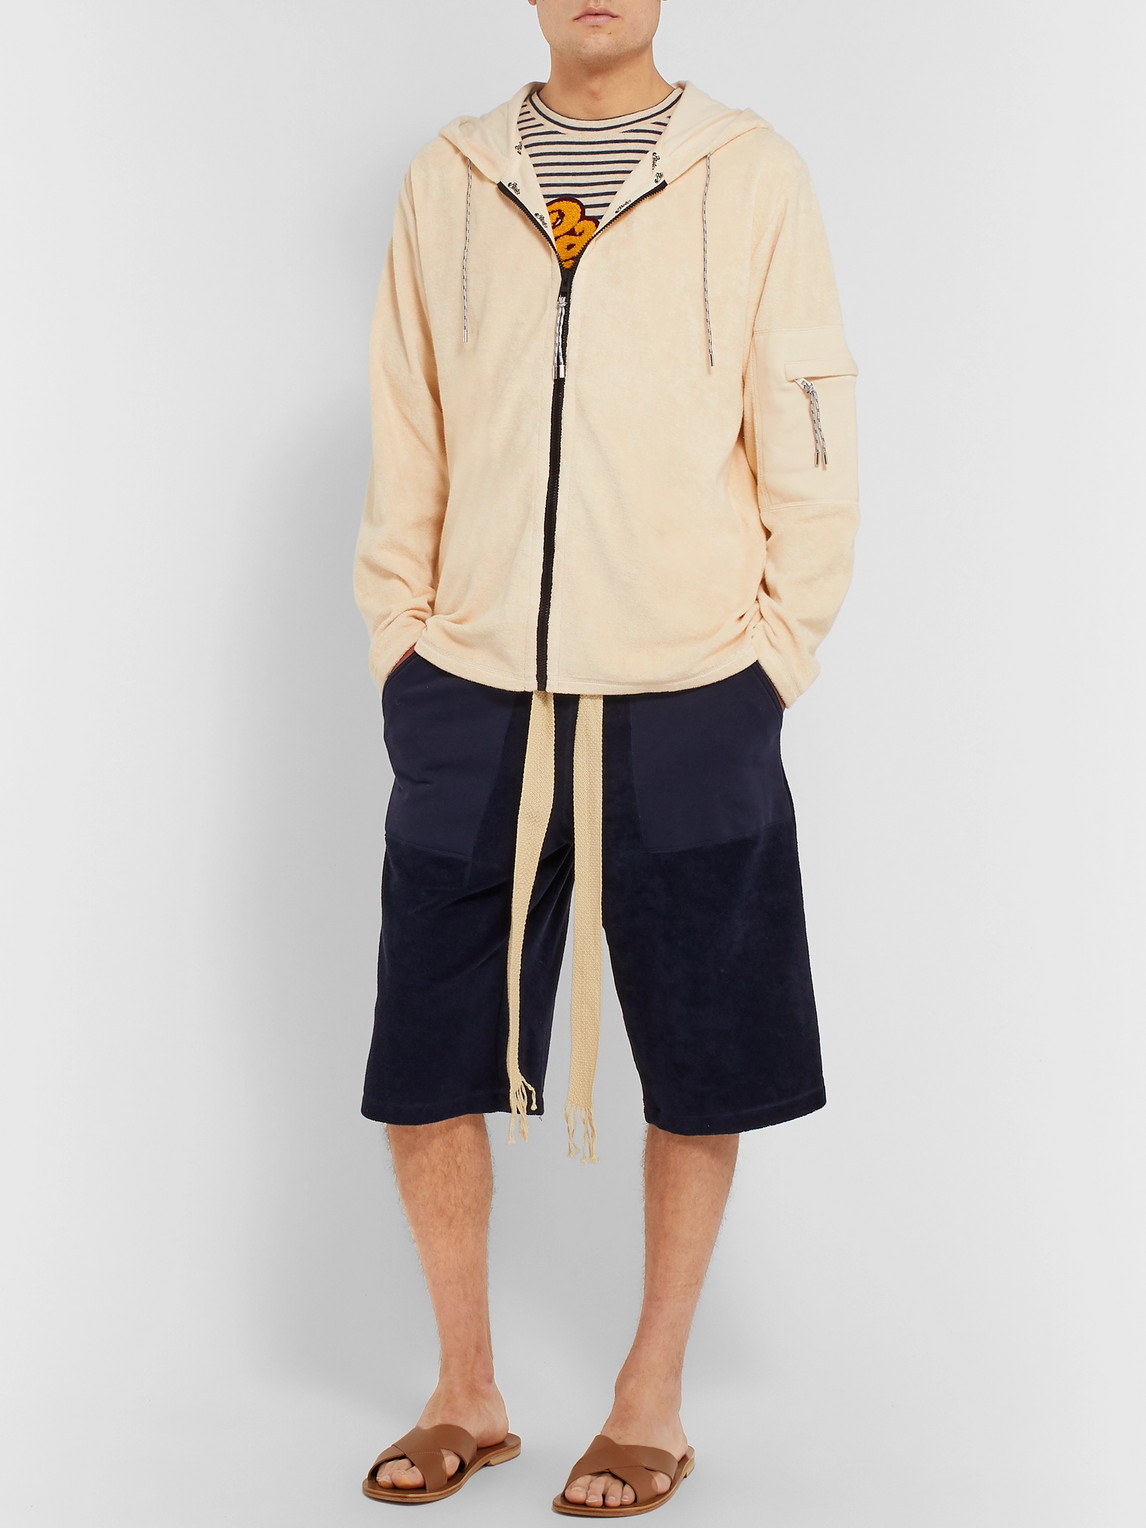 Loewe Tops PAULA'S IBIZA LOGO-APPLIQUÉD COTTON-TERRY ZIP-UP HOODIE